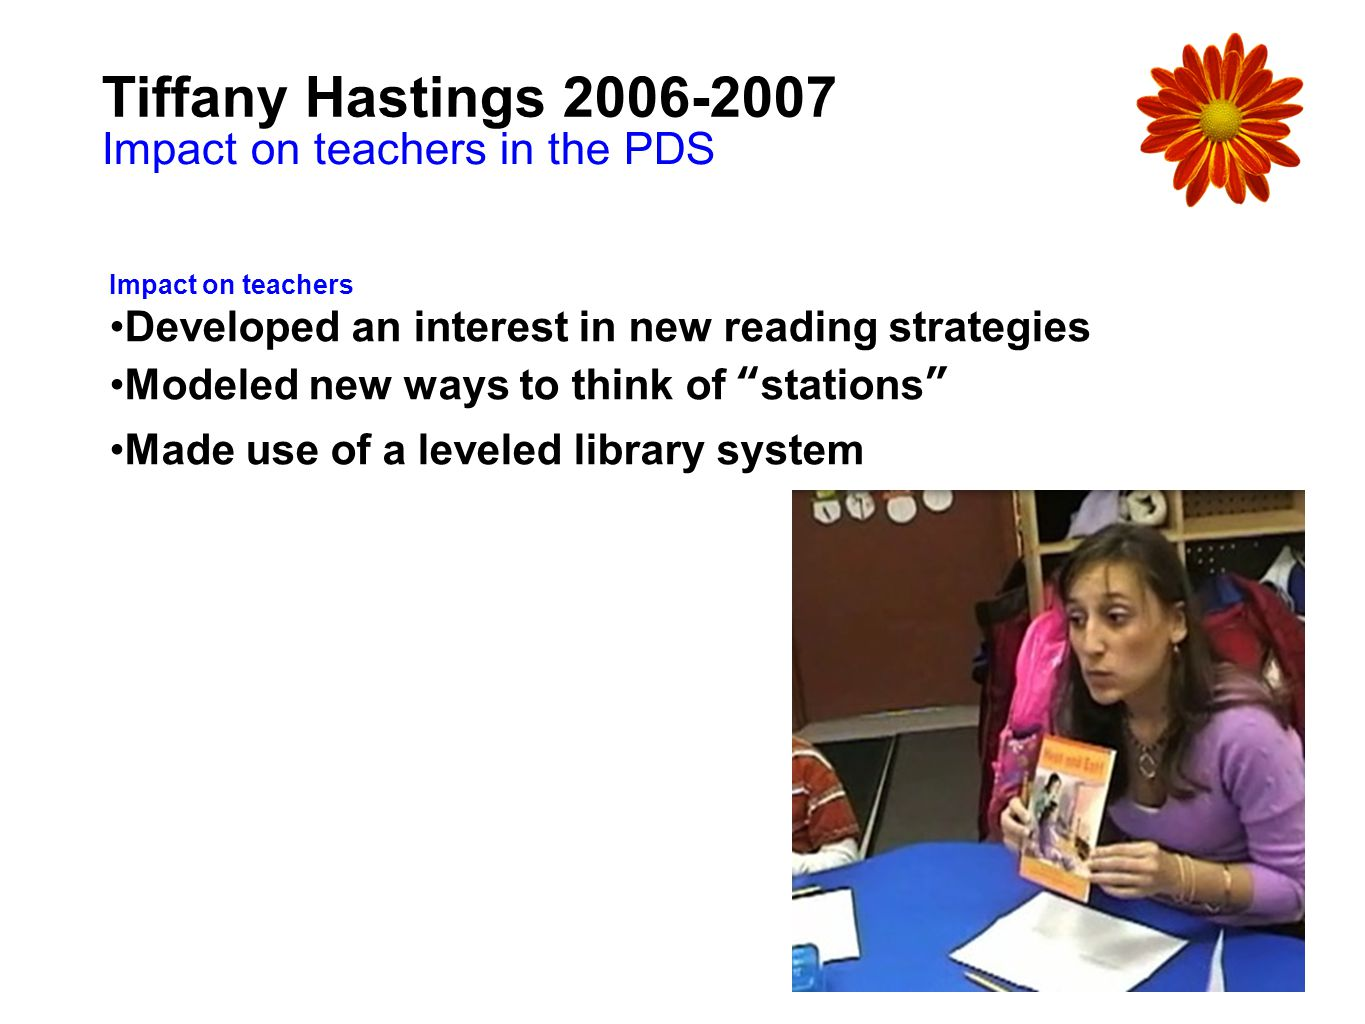 Tiffany Hastings 2006-2007 Impact on teachers in the PDS